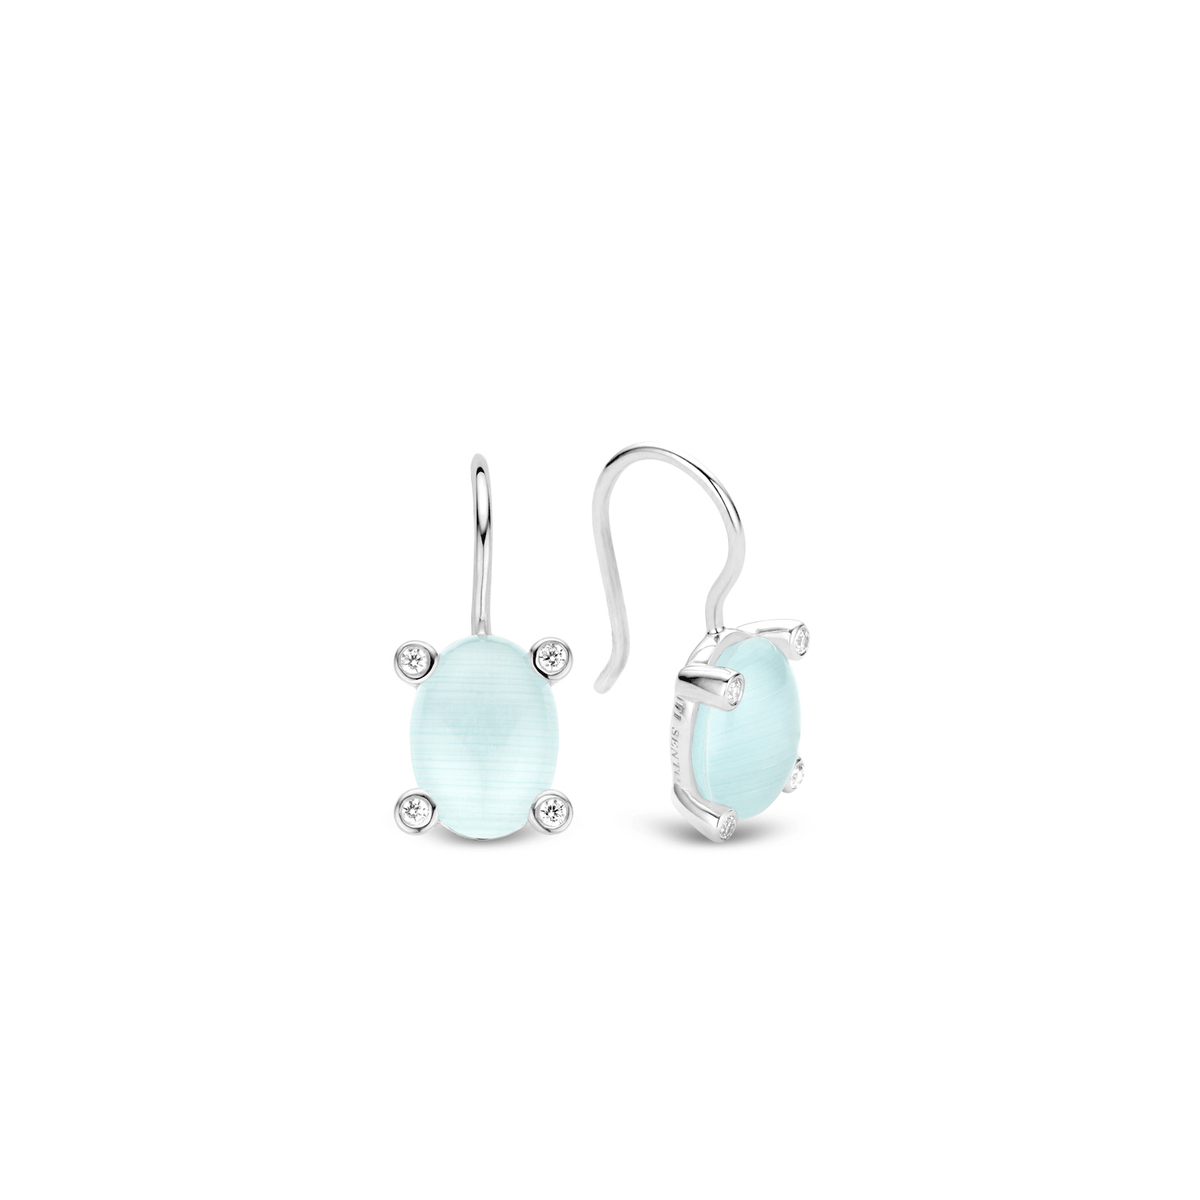 TI SENTO - Milano Earrings 7753AG